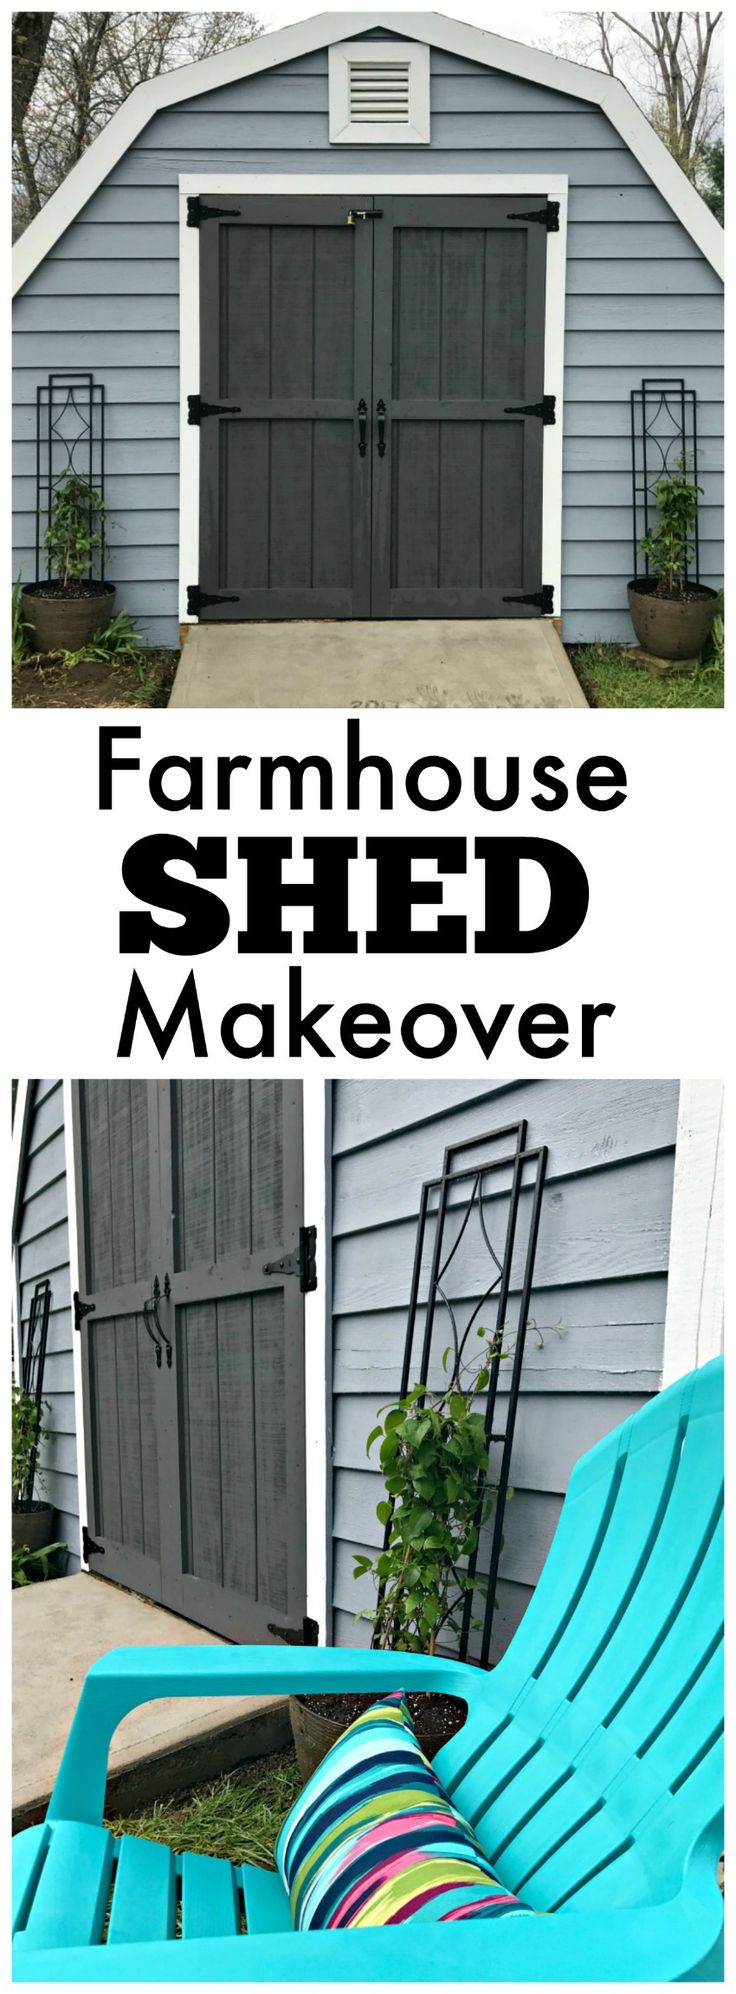 Farmhouse Shed Makeover -- an easy way to create MyOutdoorOasis #Ad @lowes